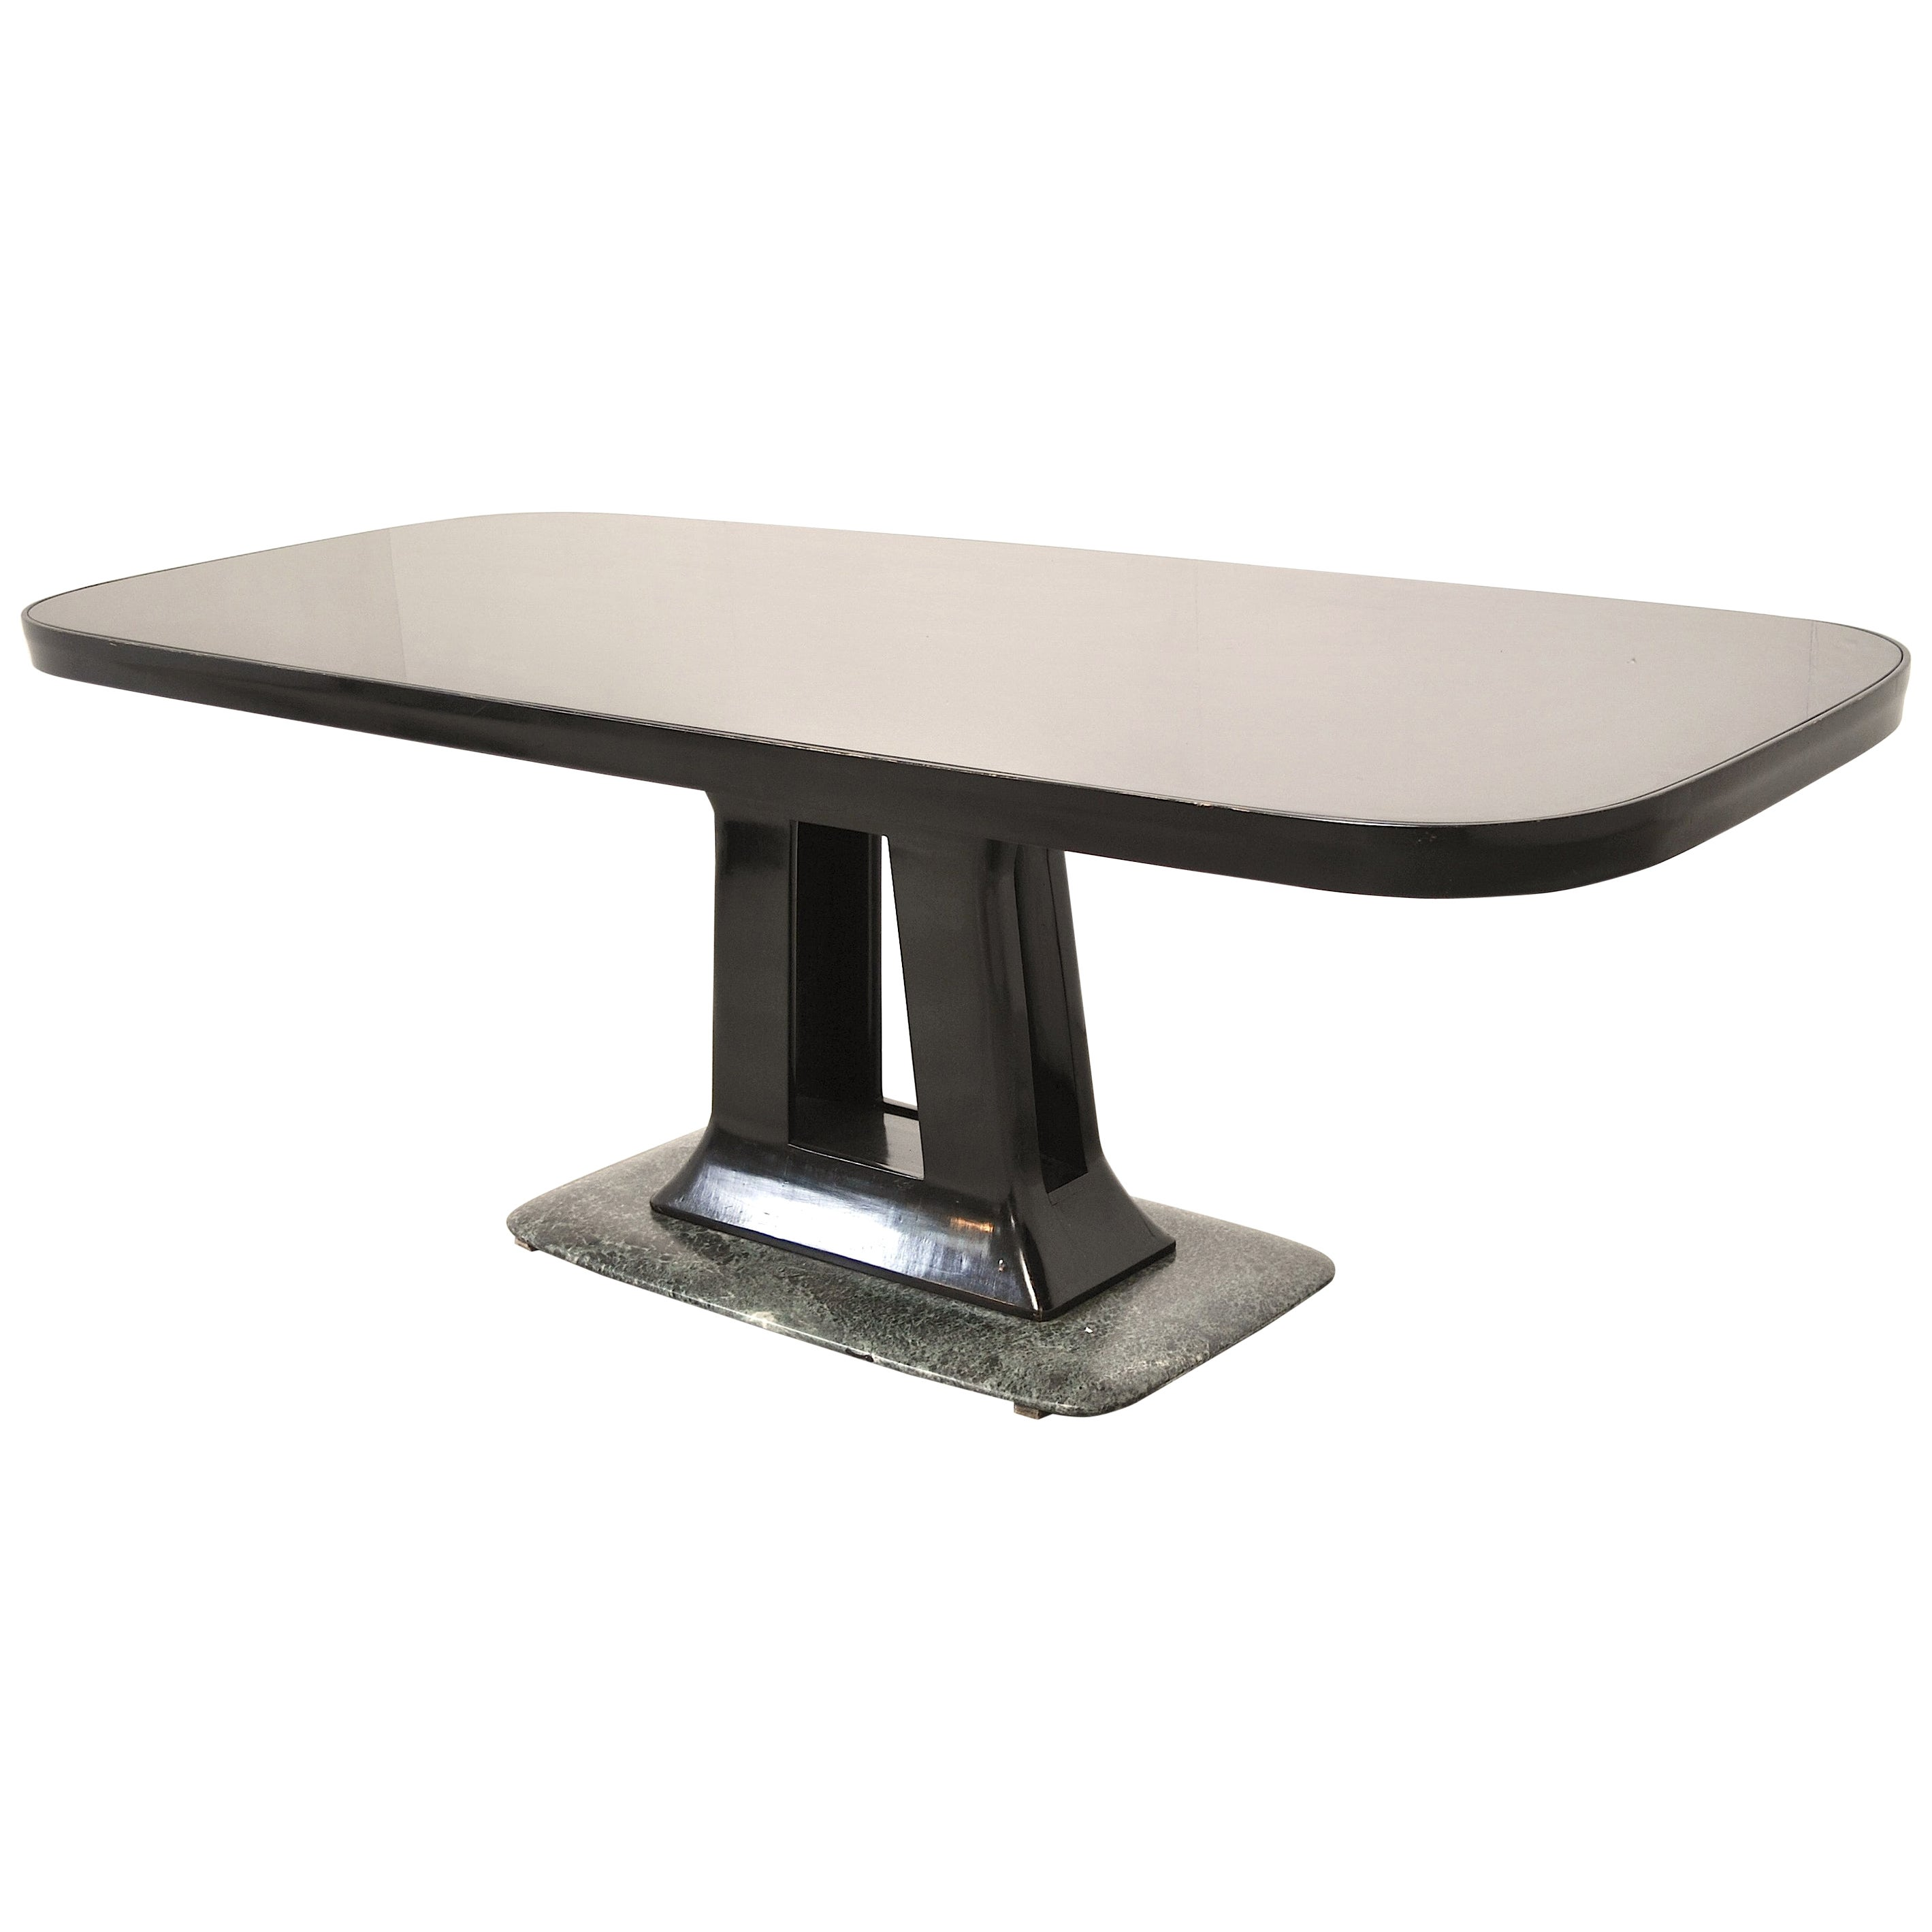 Vittorio Dassi Italian Art Deco Dining Table with Marble Base, 1940s